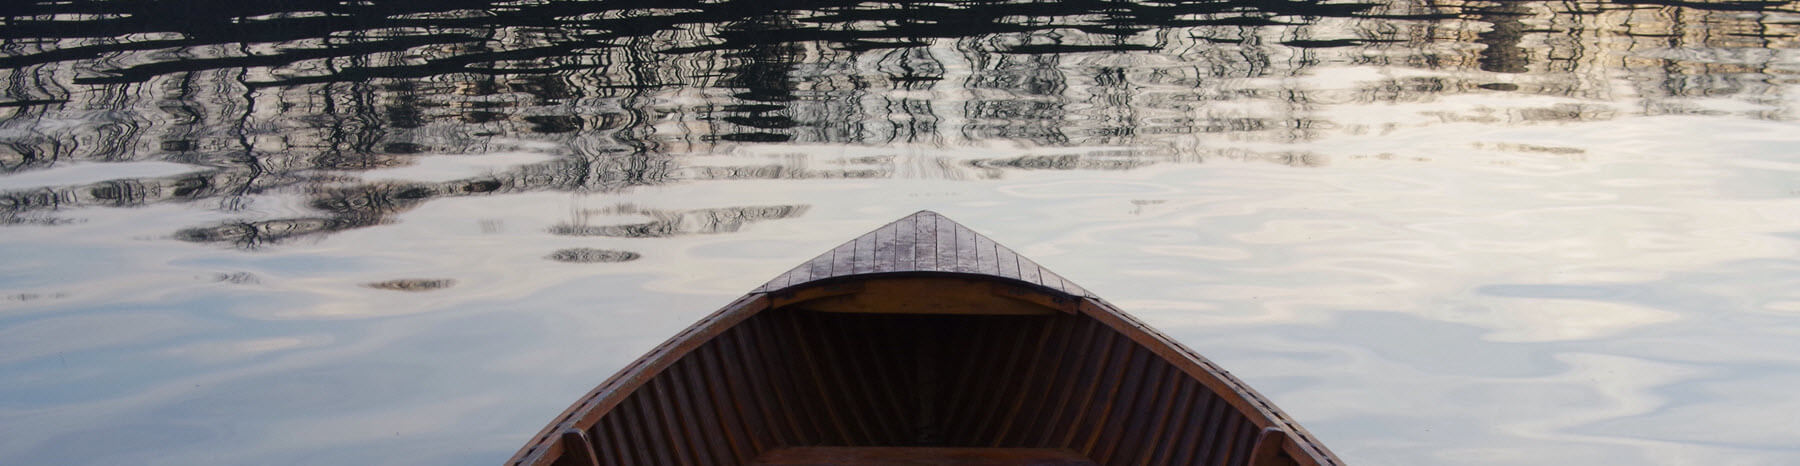 Rowing boat on water